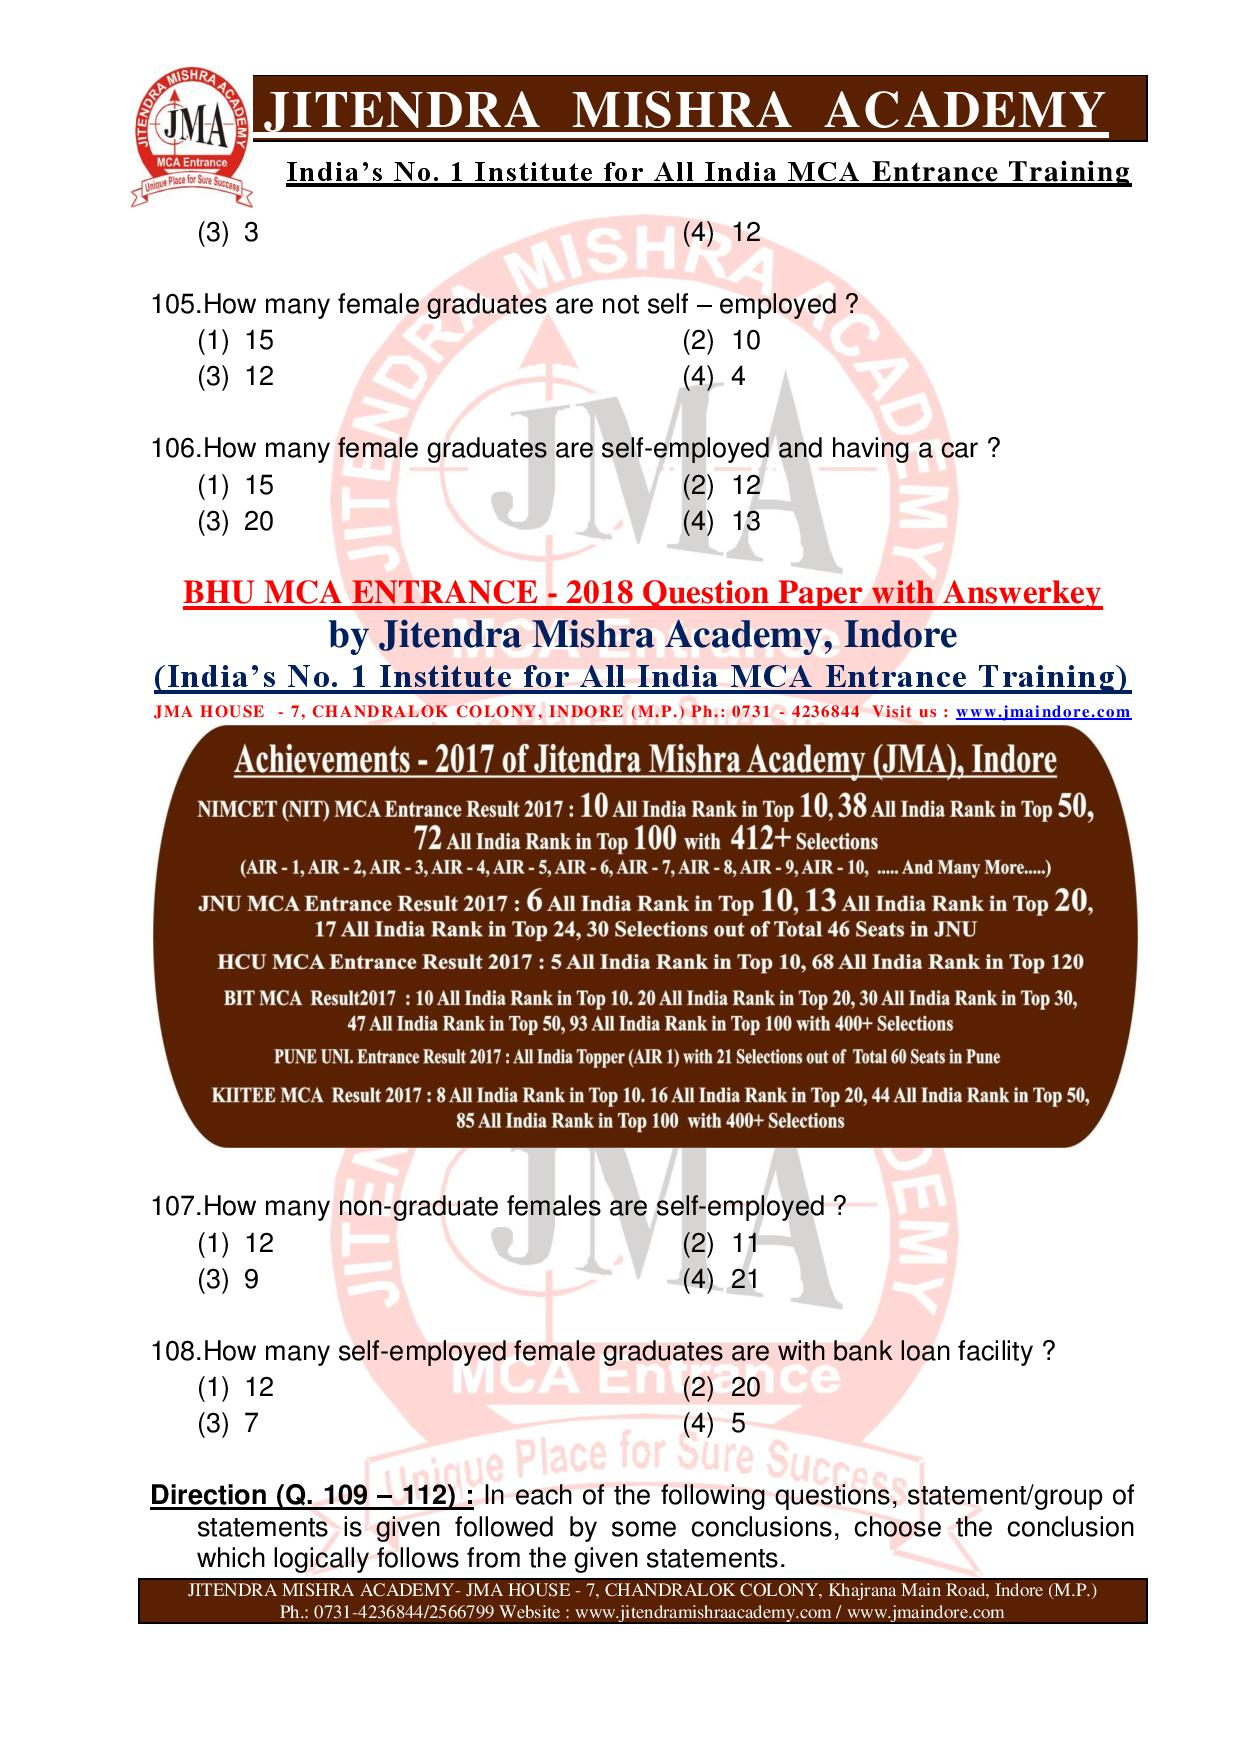 BHU MCA 2018 QUESTION PAPER12-page-033